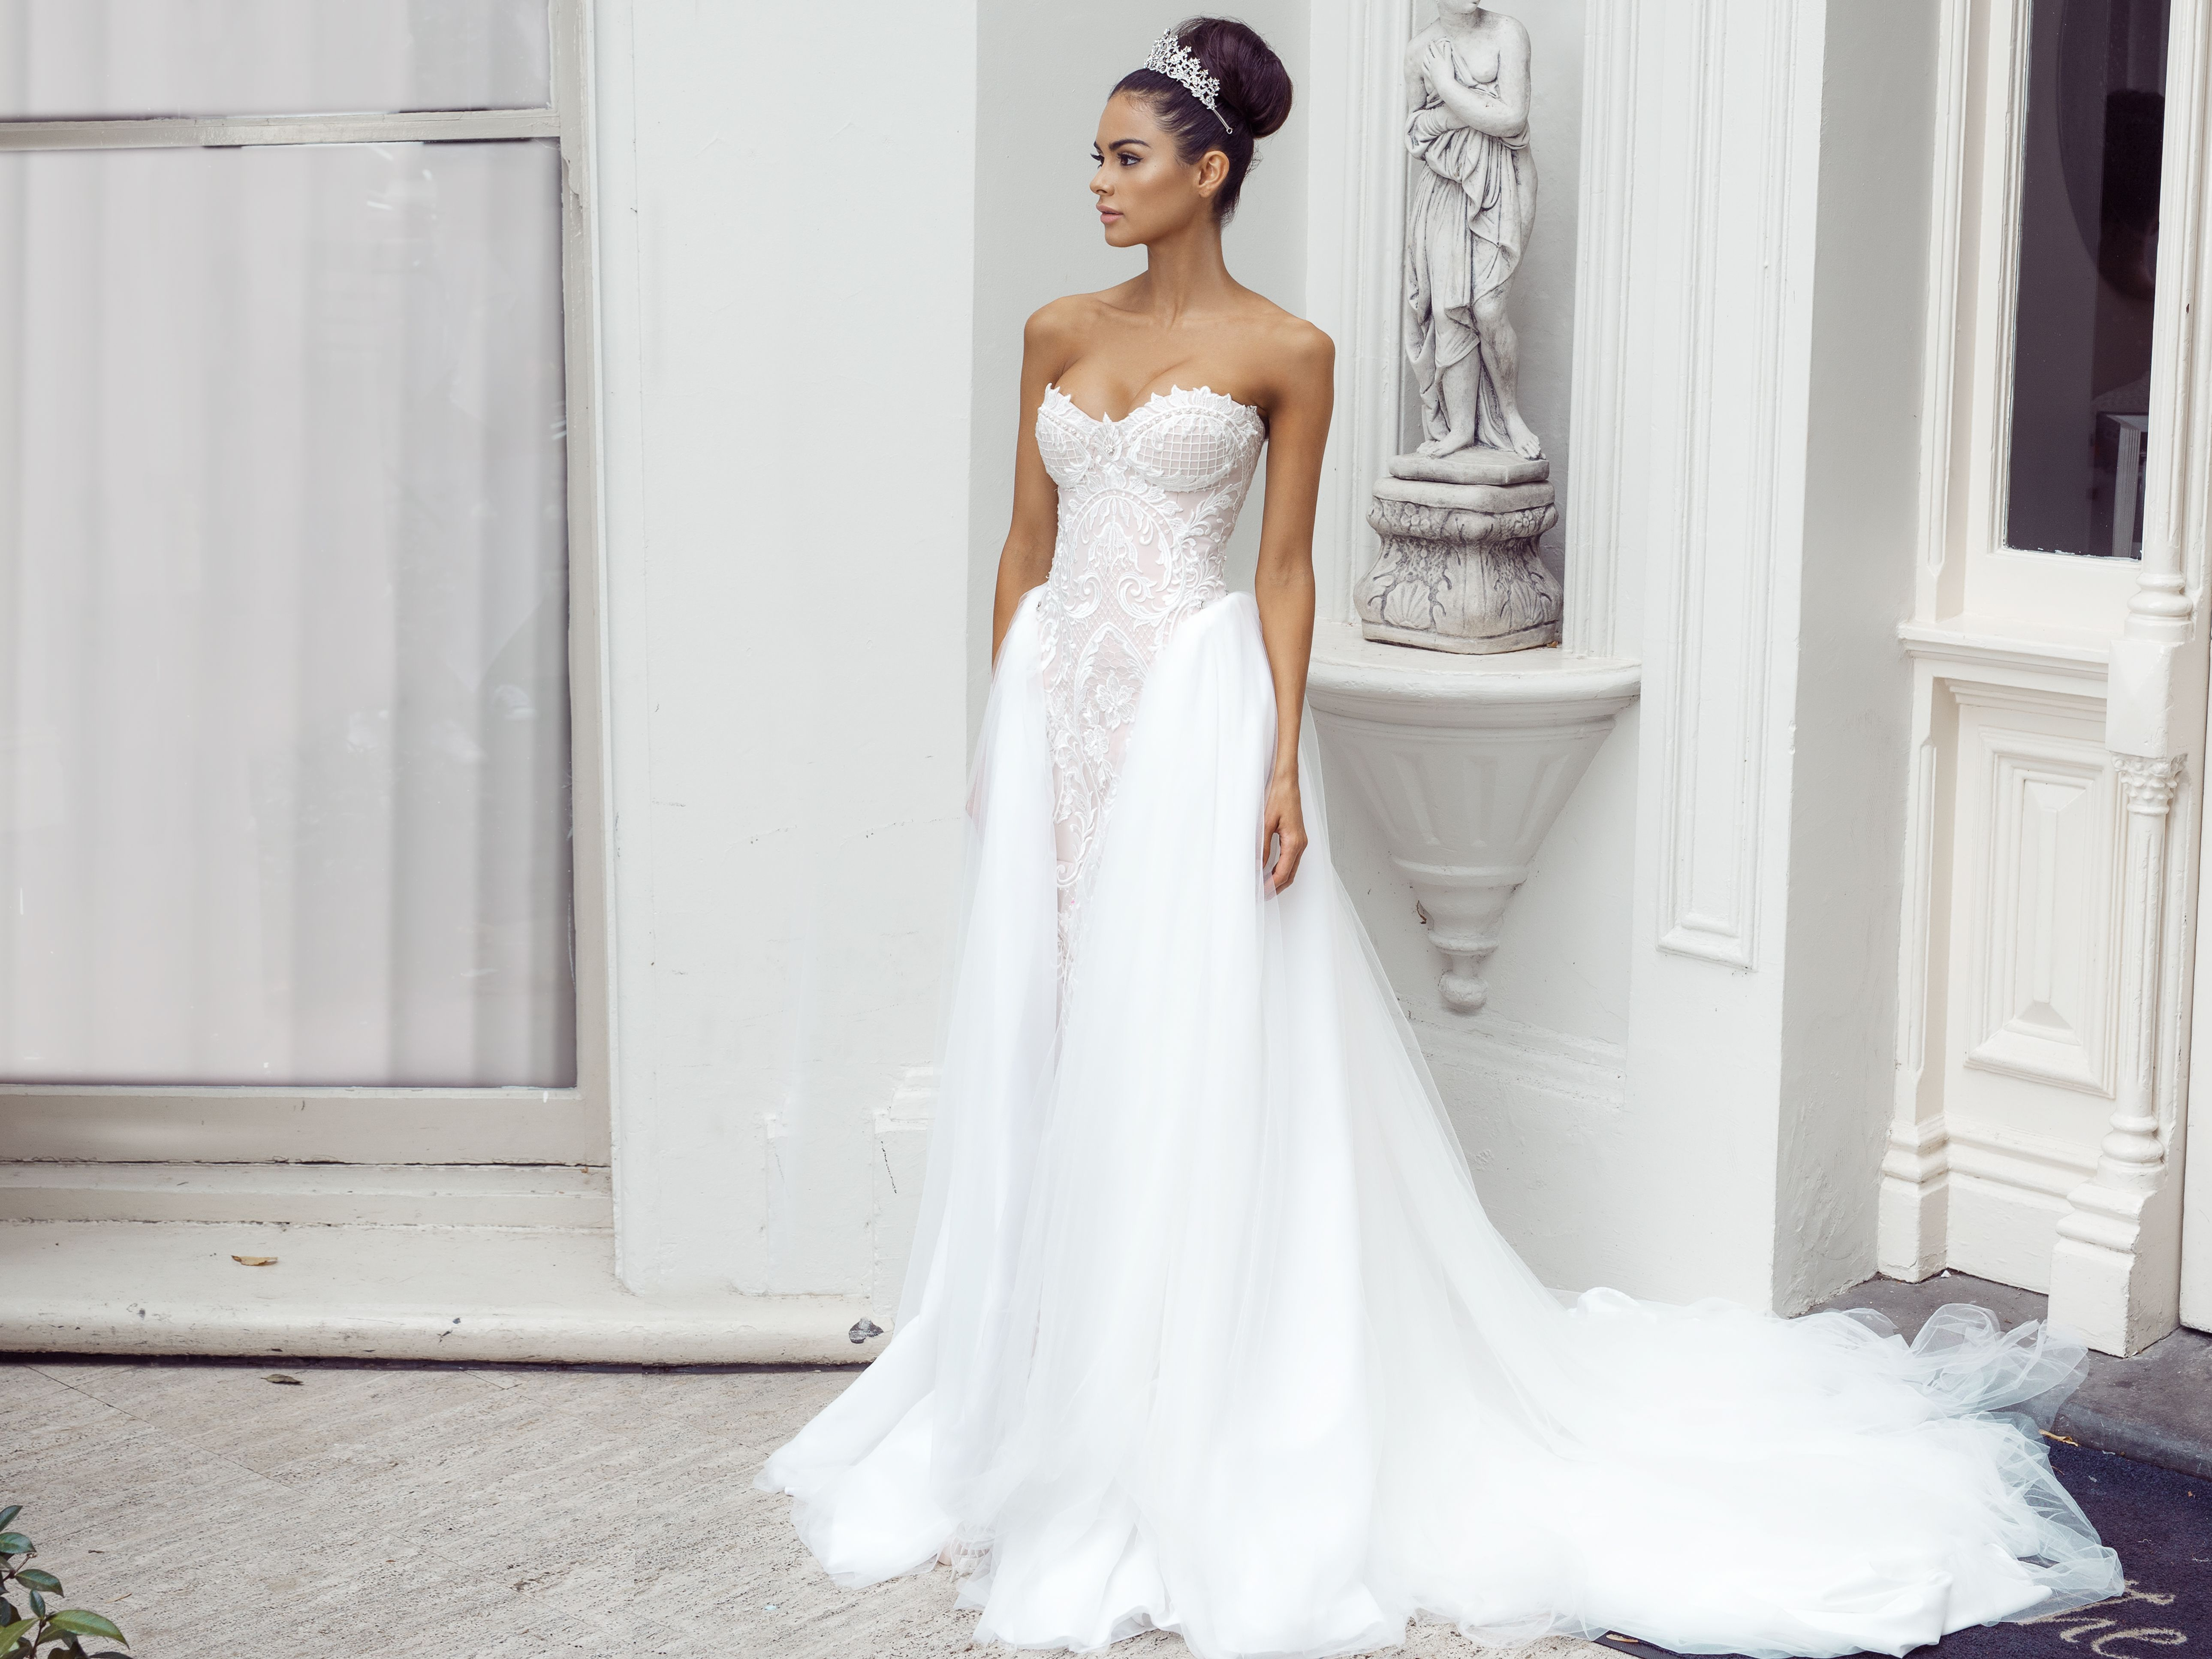 Spectacular Kleinfeld Bridal Mobile The Largest Selection of Wedding Dresses on the go